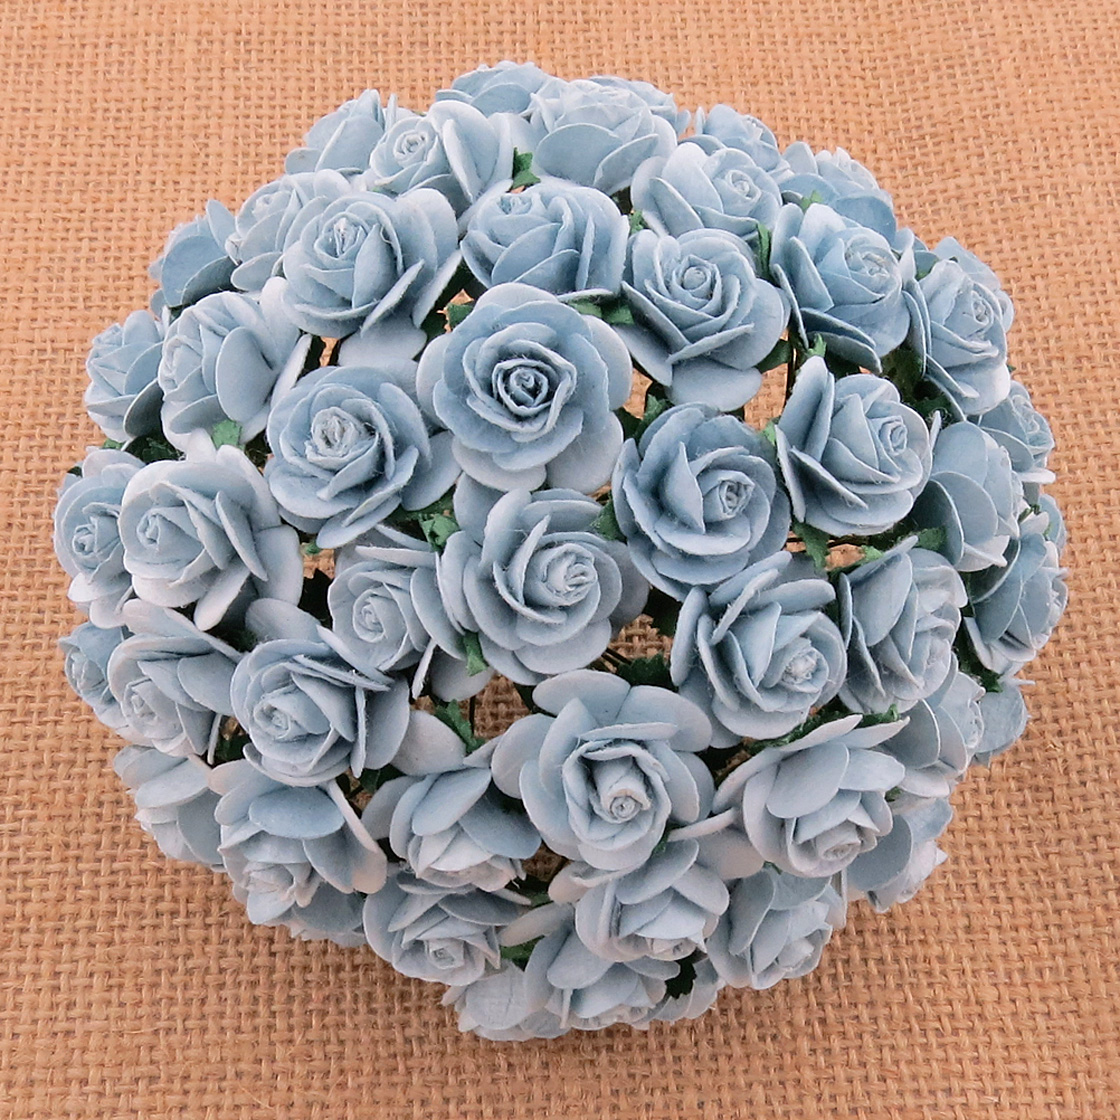 100 BABY BLUE MULBERRY PAPER OPEN ROSES